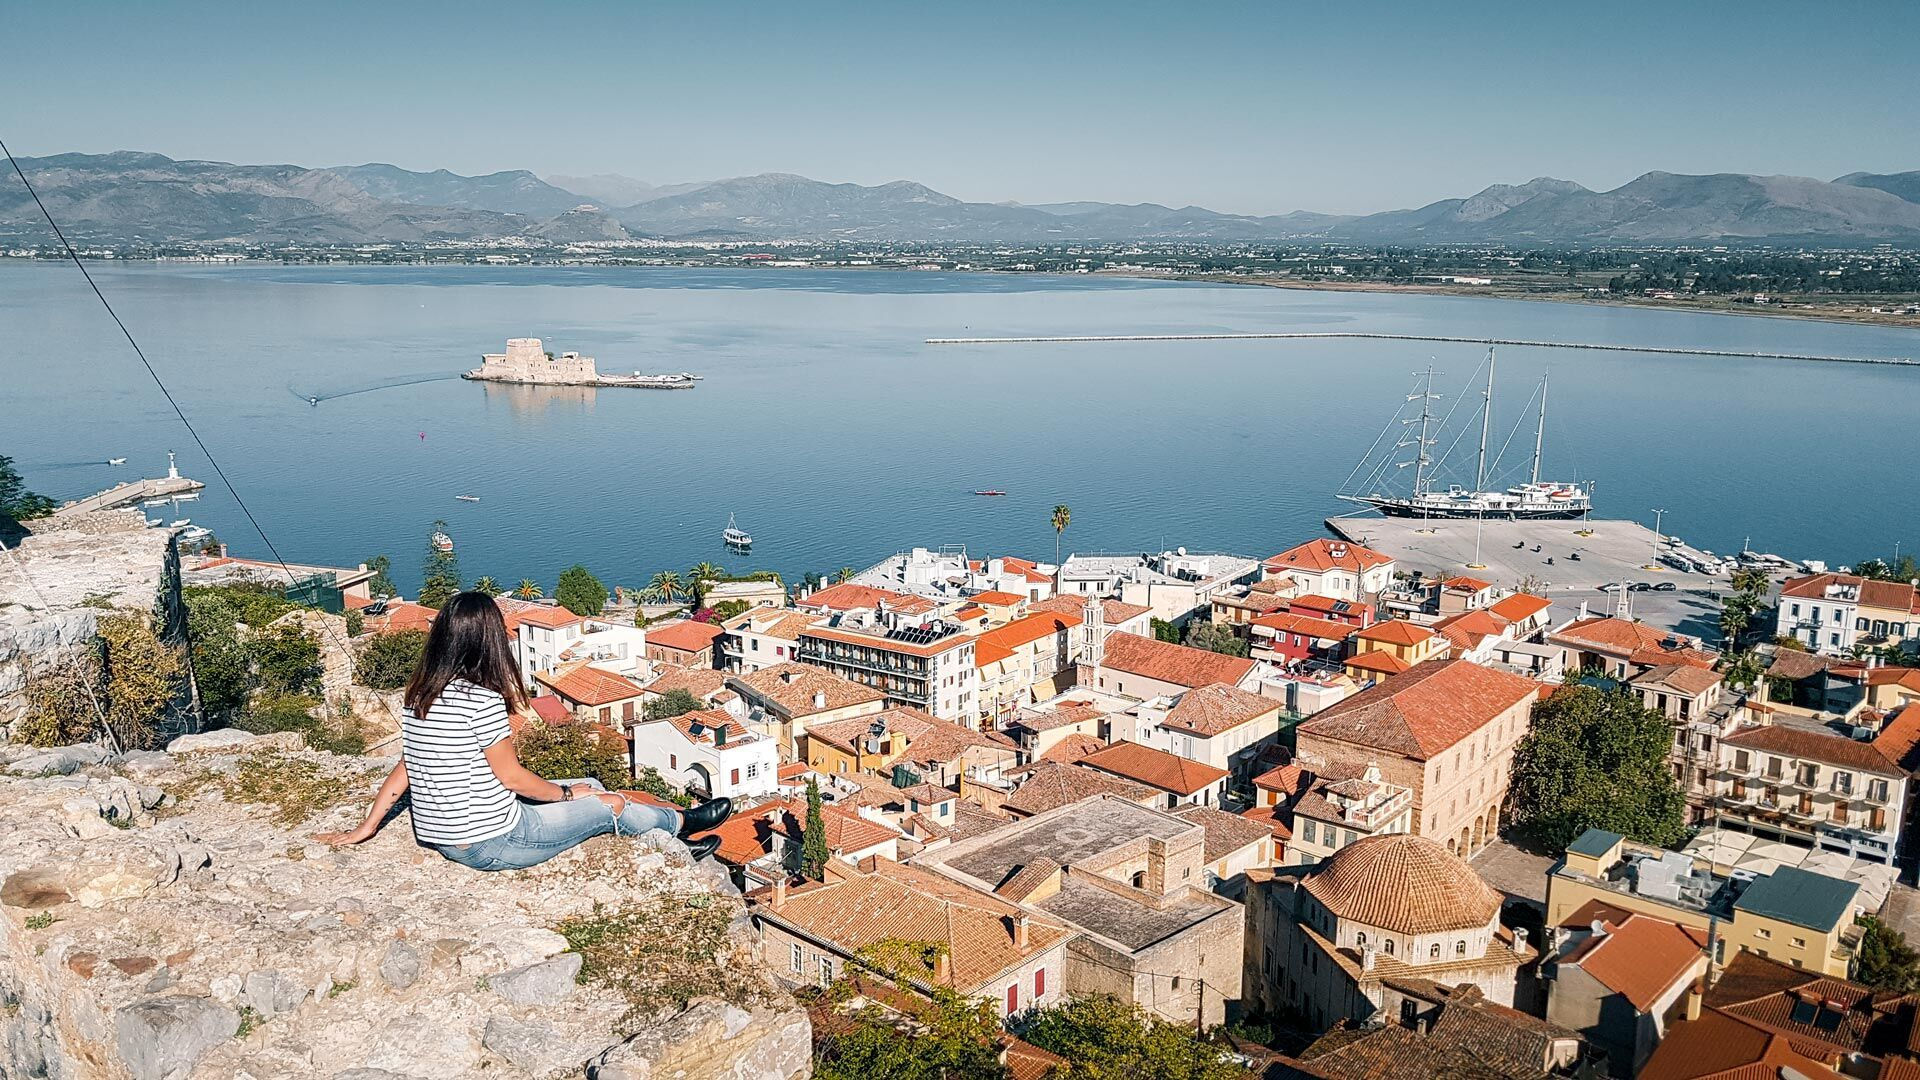 View of Nafplio city and Bourtzi castle from above